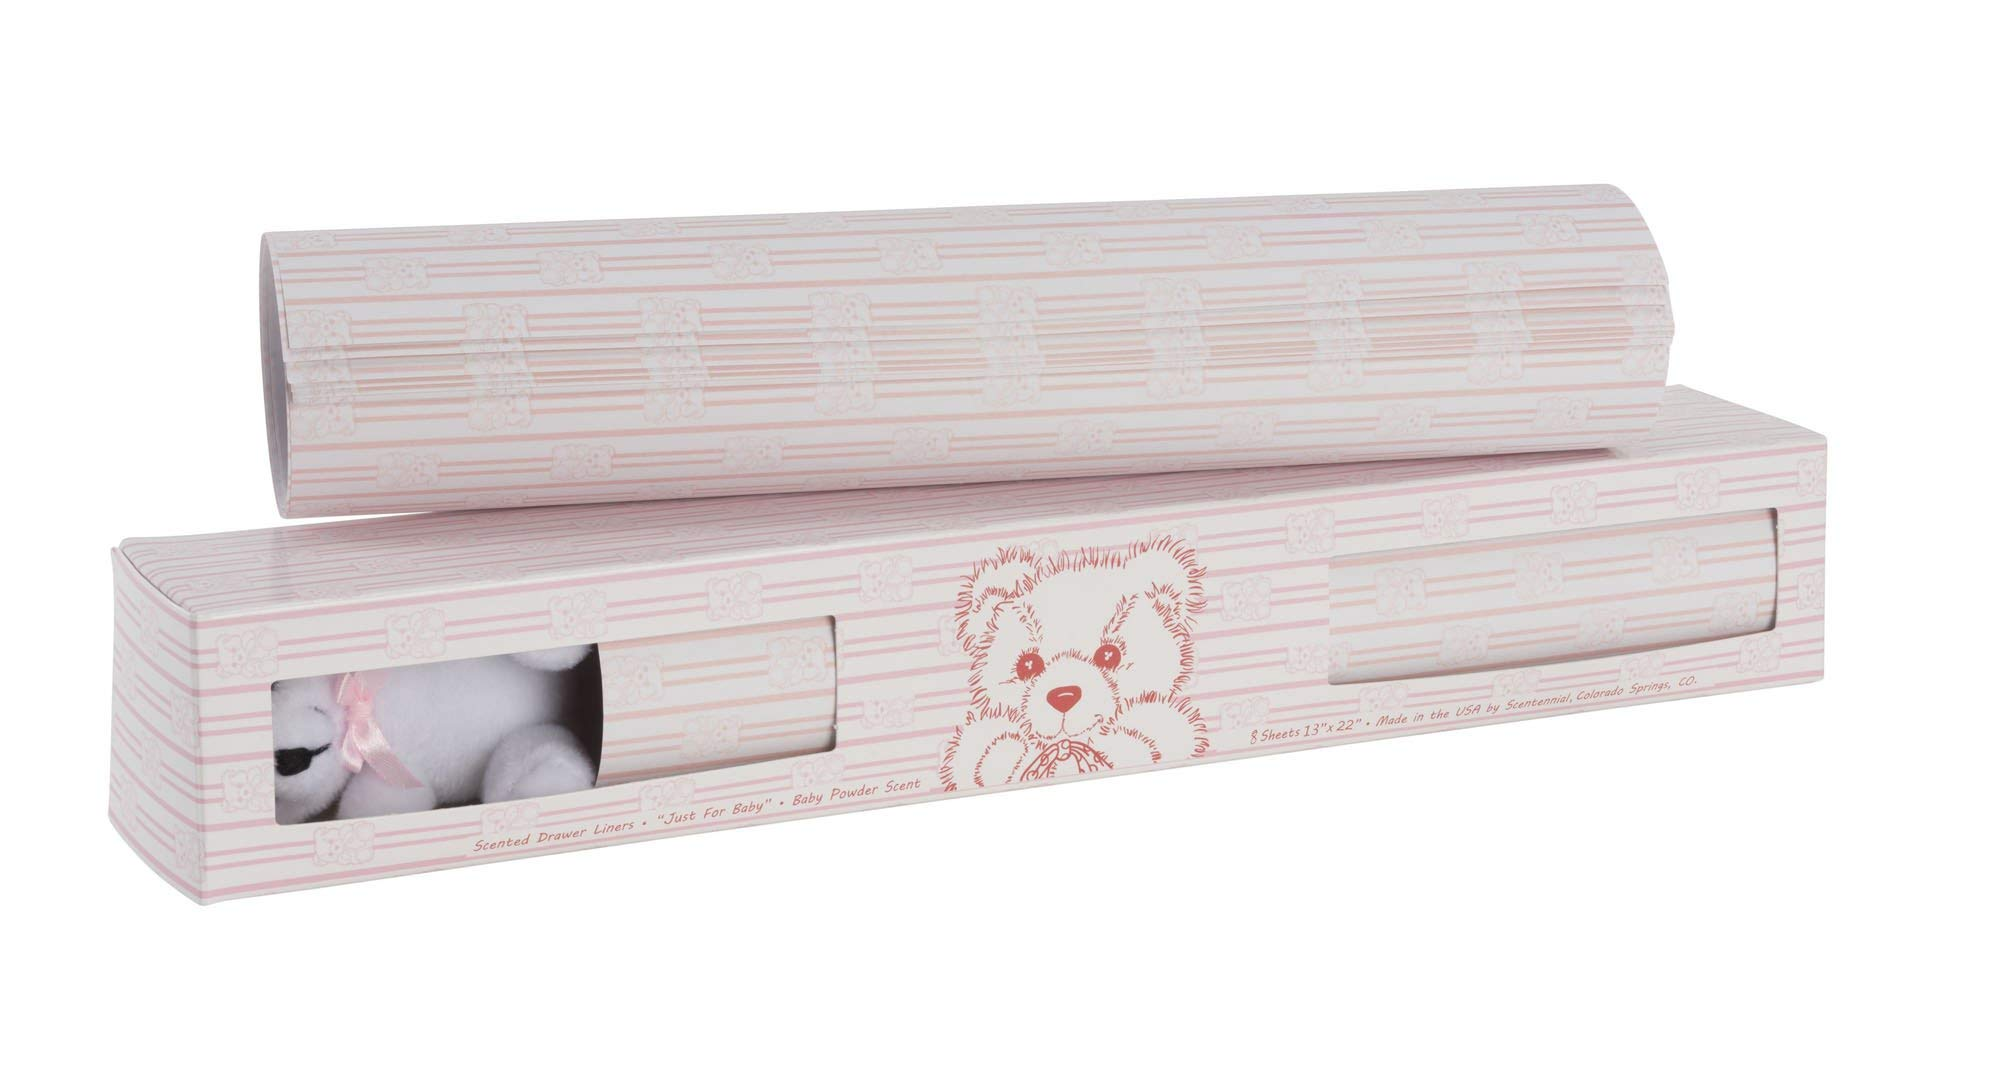 Scentennials Baby Original Pink with Teddy Bear (16 Sheets) Scented Drawer Liners by Scentennials Scented Drawer Liners